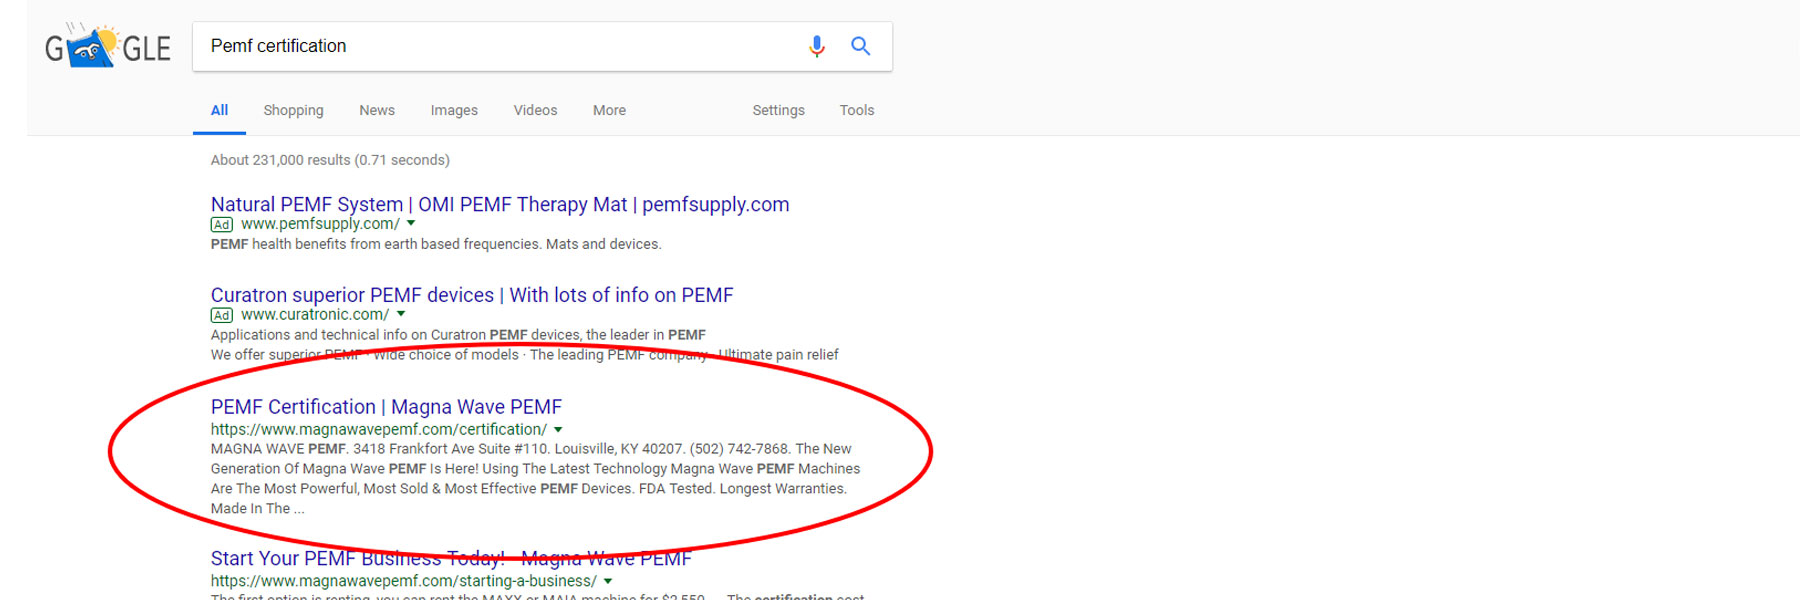 Crosby Interactive Search Engine Optimization SEO - Google Example PEMF certification